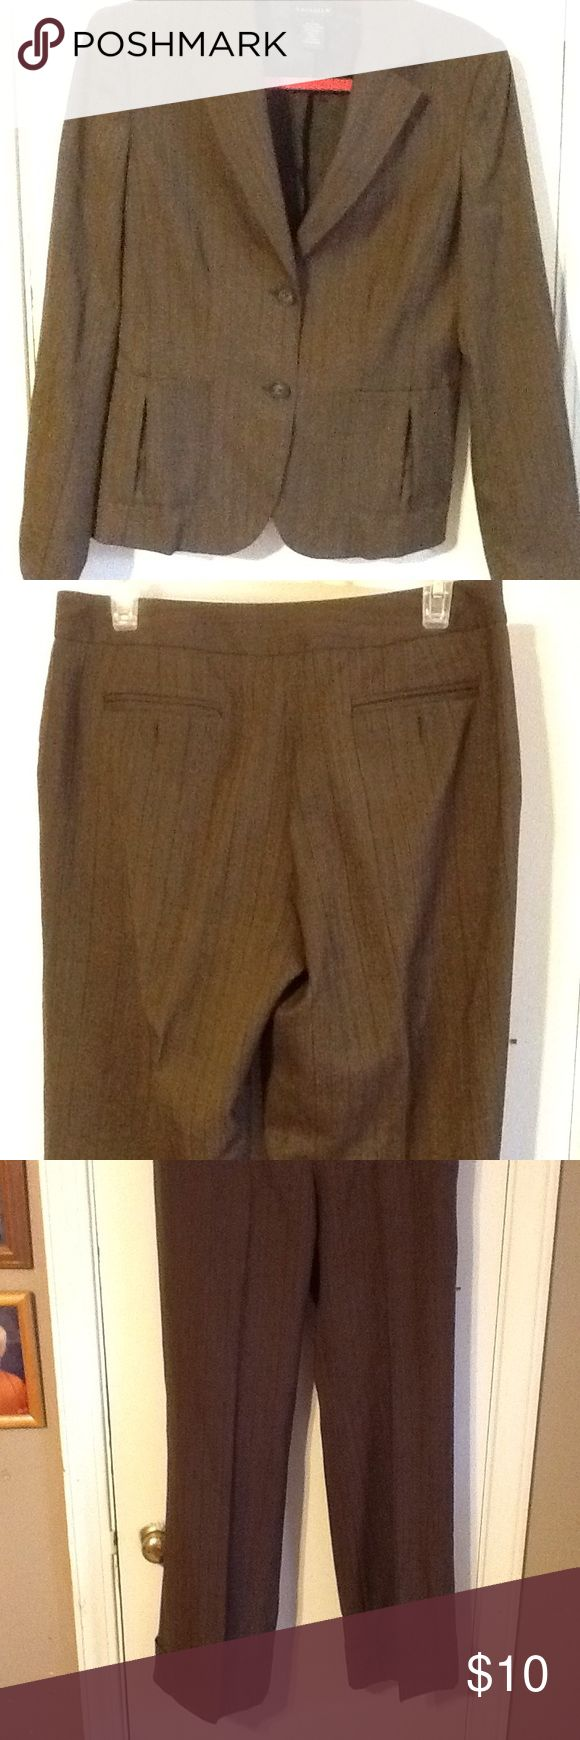 2 pc pant suit by Rafaella size 6 Lined pant suit brown pinstriped cuffed leg wool polyester spandex in very good condition Rafaella Pants Trousers